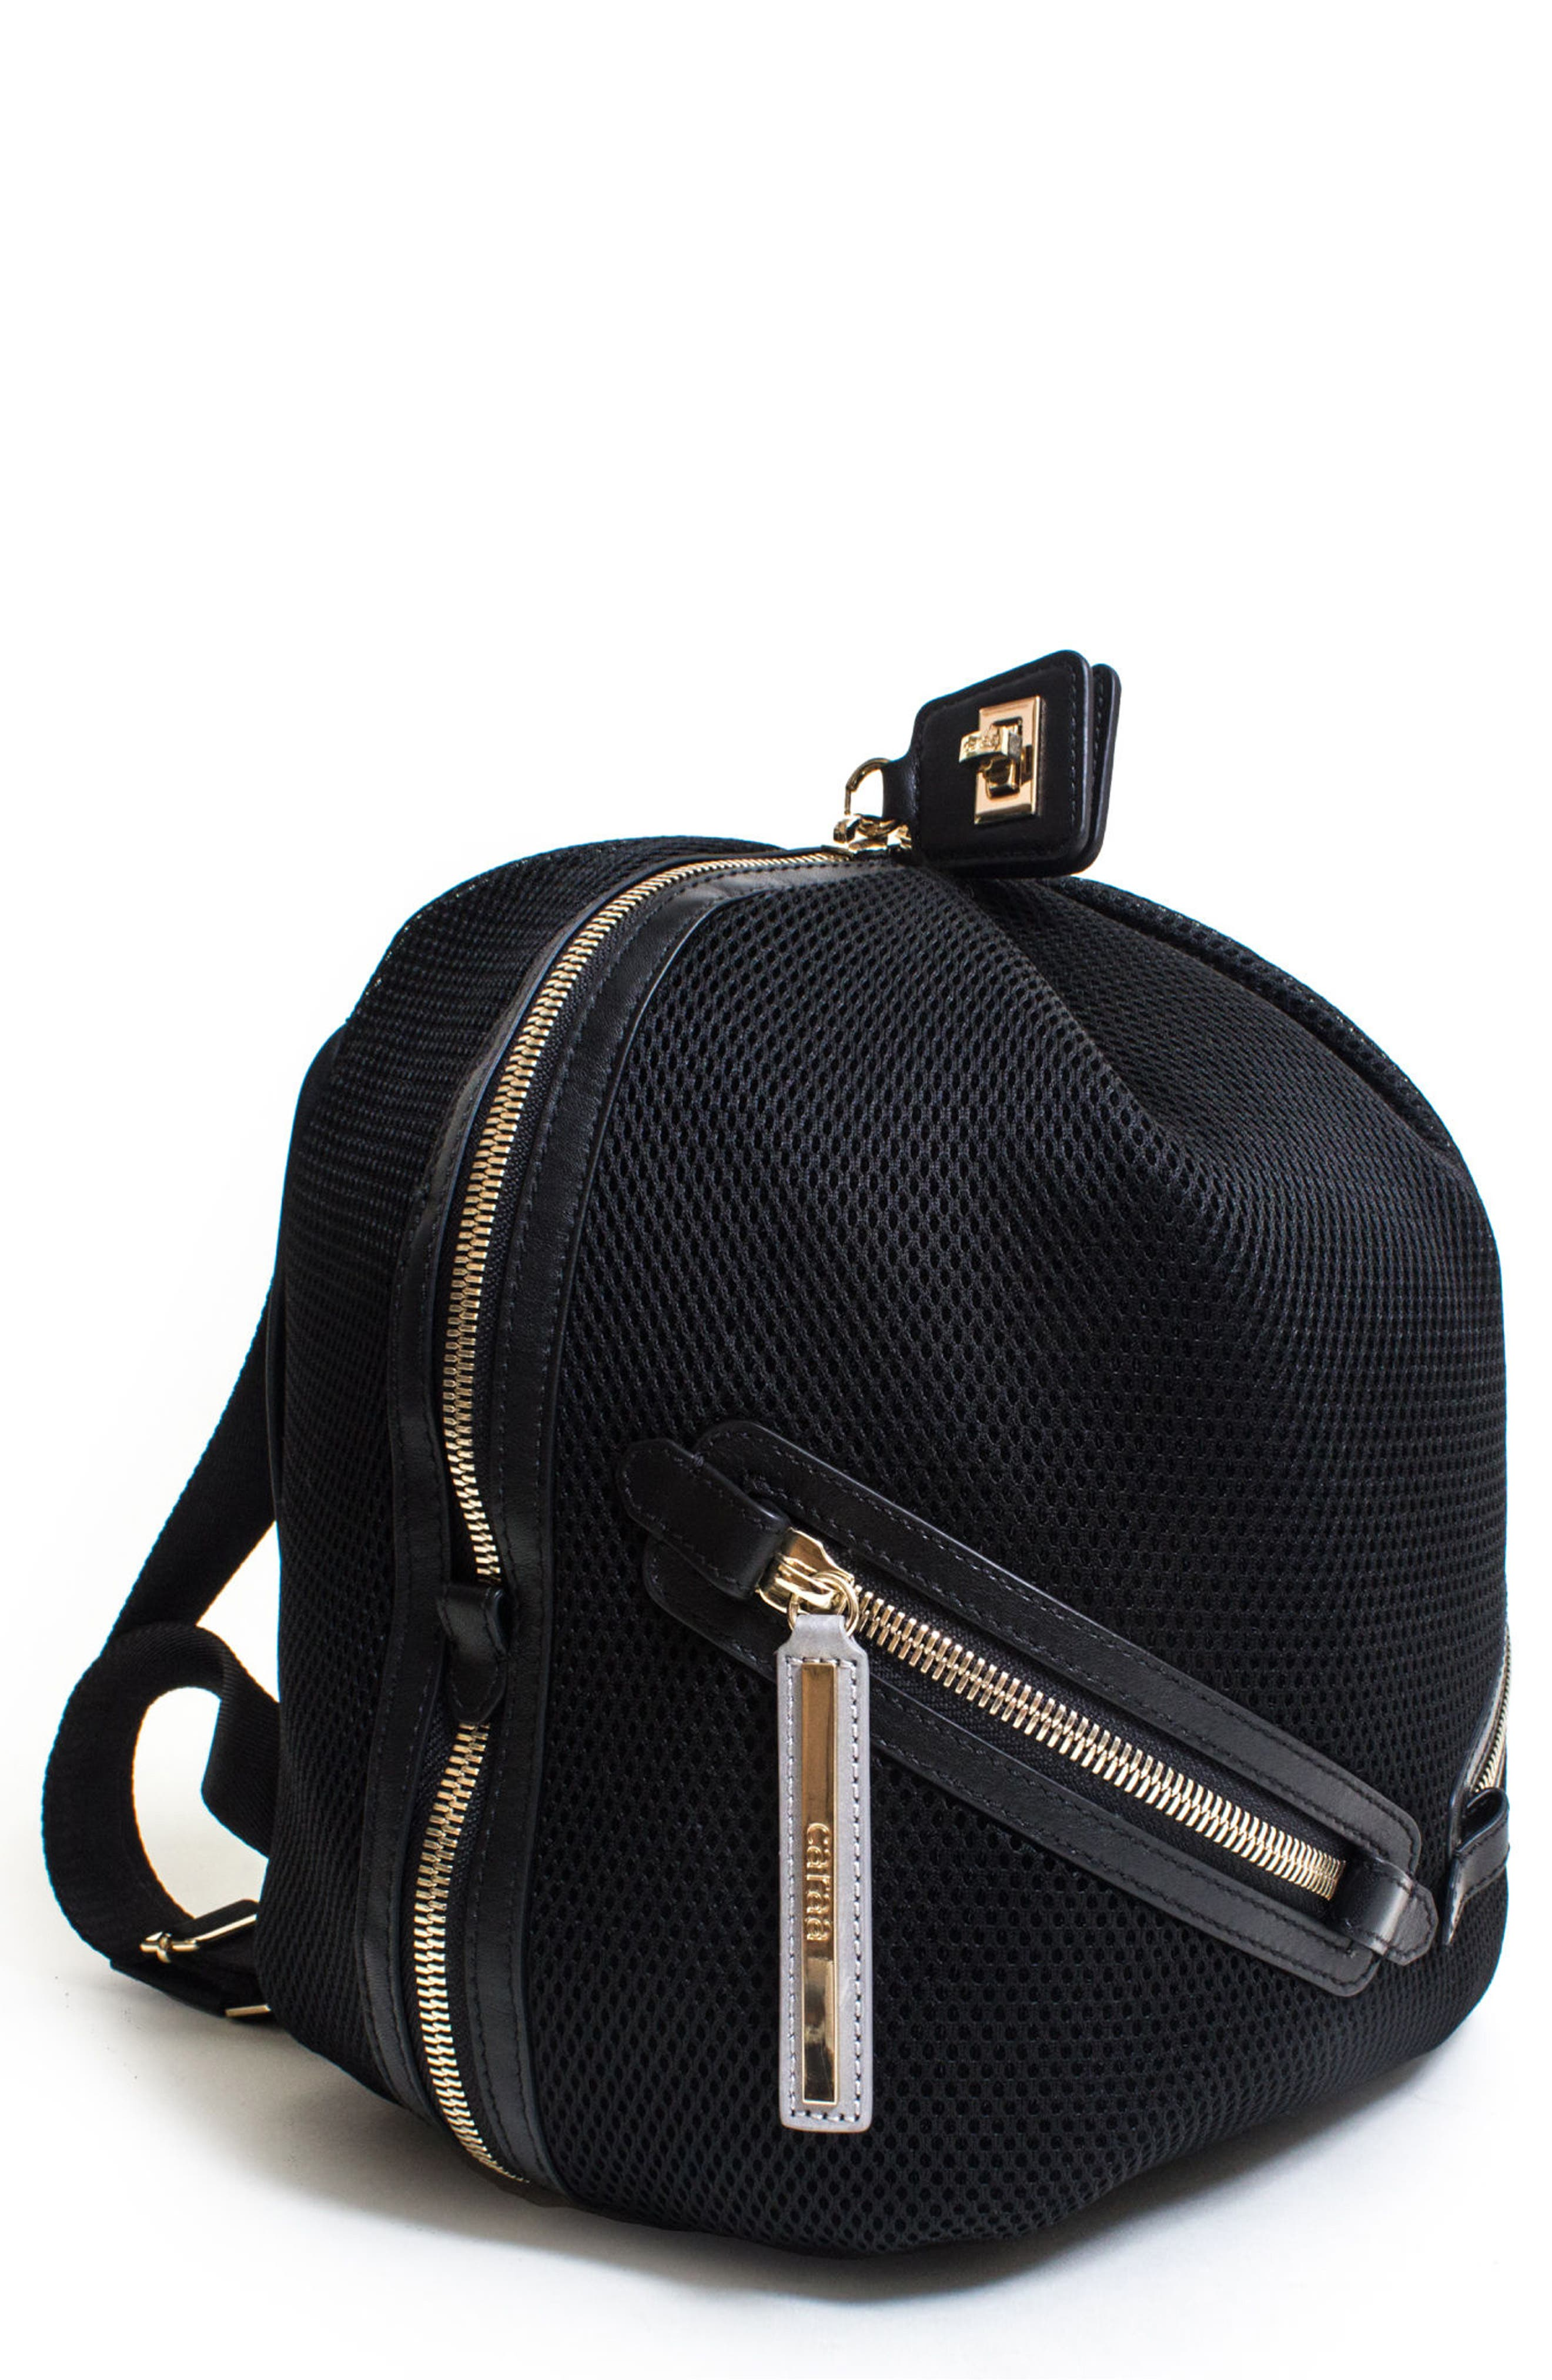 Dance 2 Mesh with Leather Trim Backpack,                             Main thumbnail 1, color,                             001